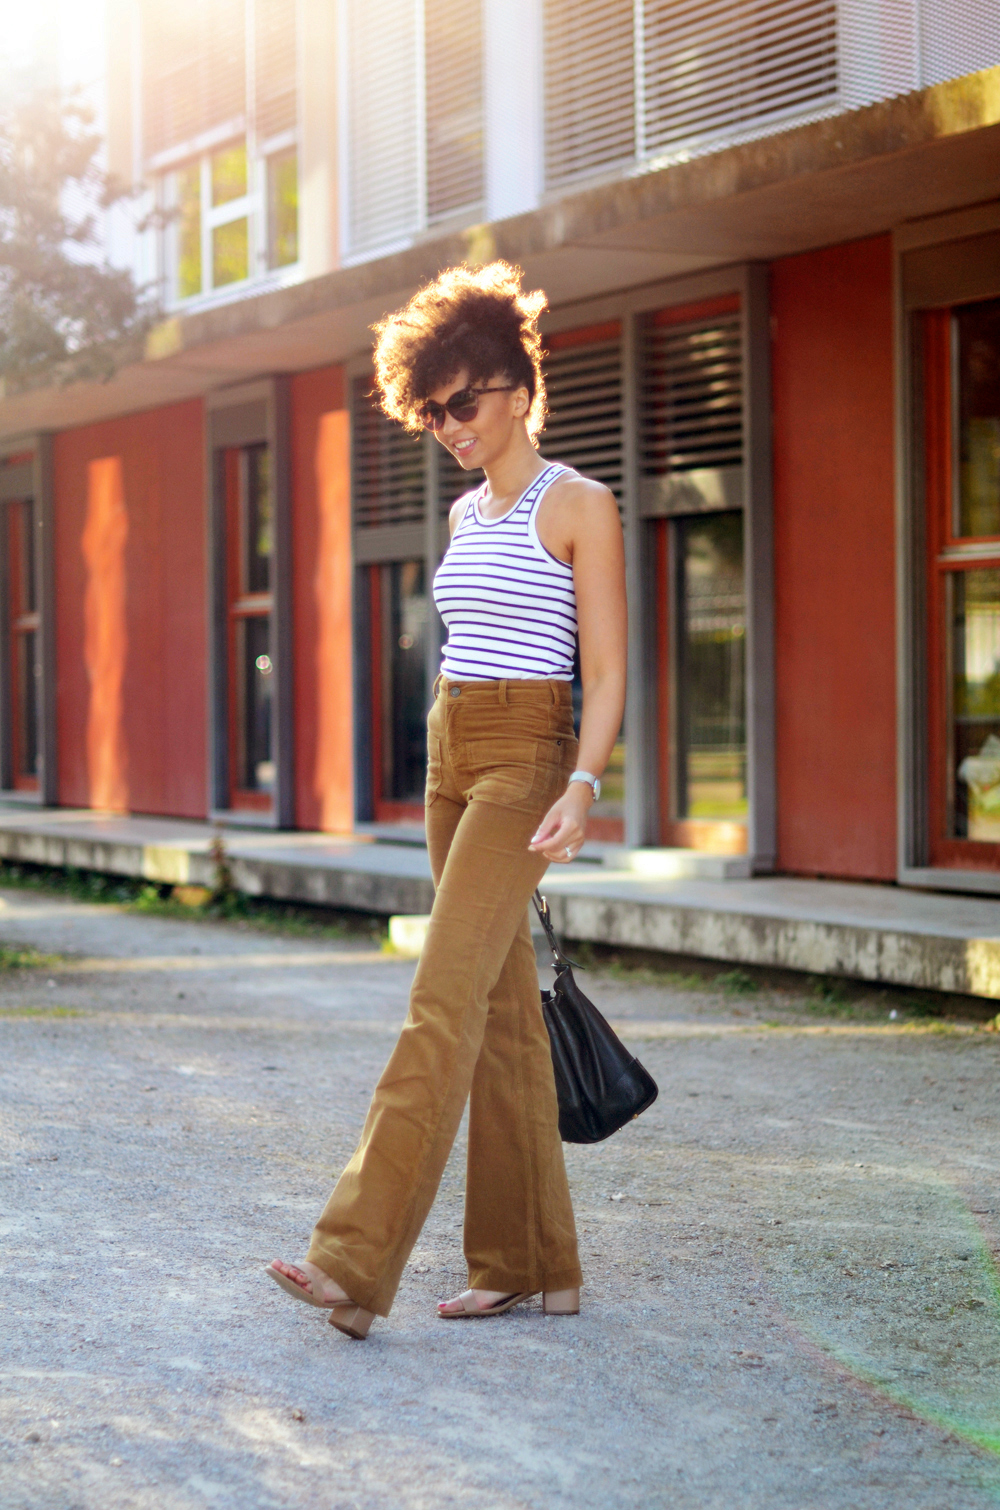 mercredie-blog-mode-geneve-suisse-blogueuse-bloggeuse-optic2000-lunettes-de-soleil-MAUI-JIM-natural-hair-frohawk-pantalon-vanessa-bruno-flare-Dompay